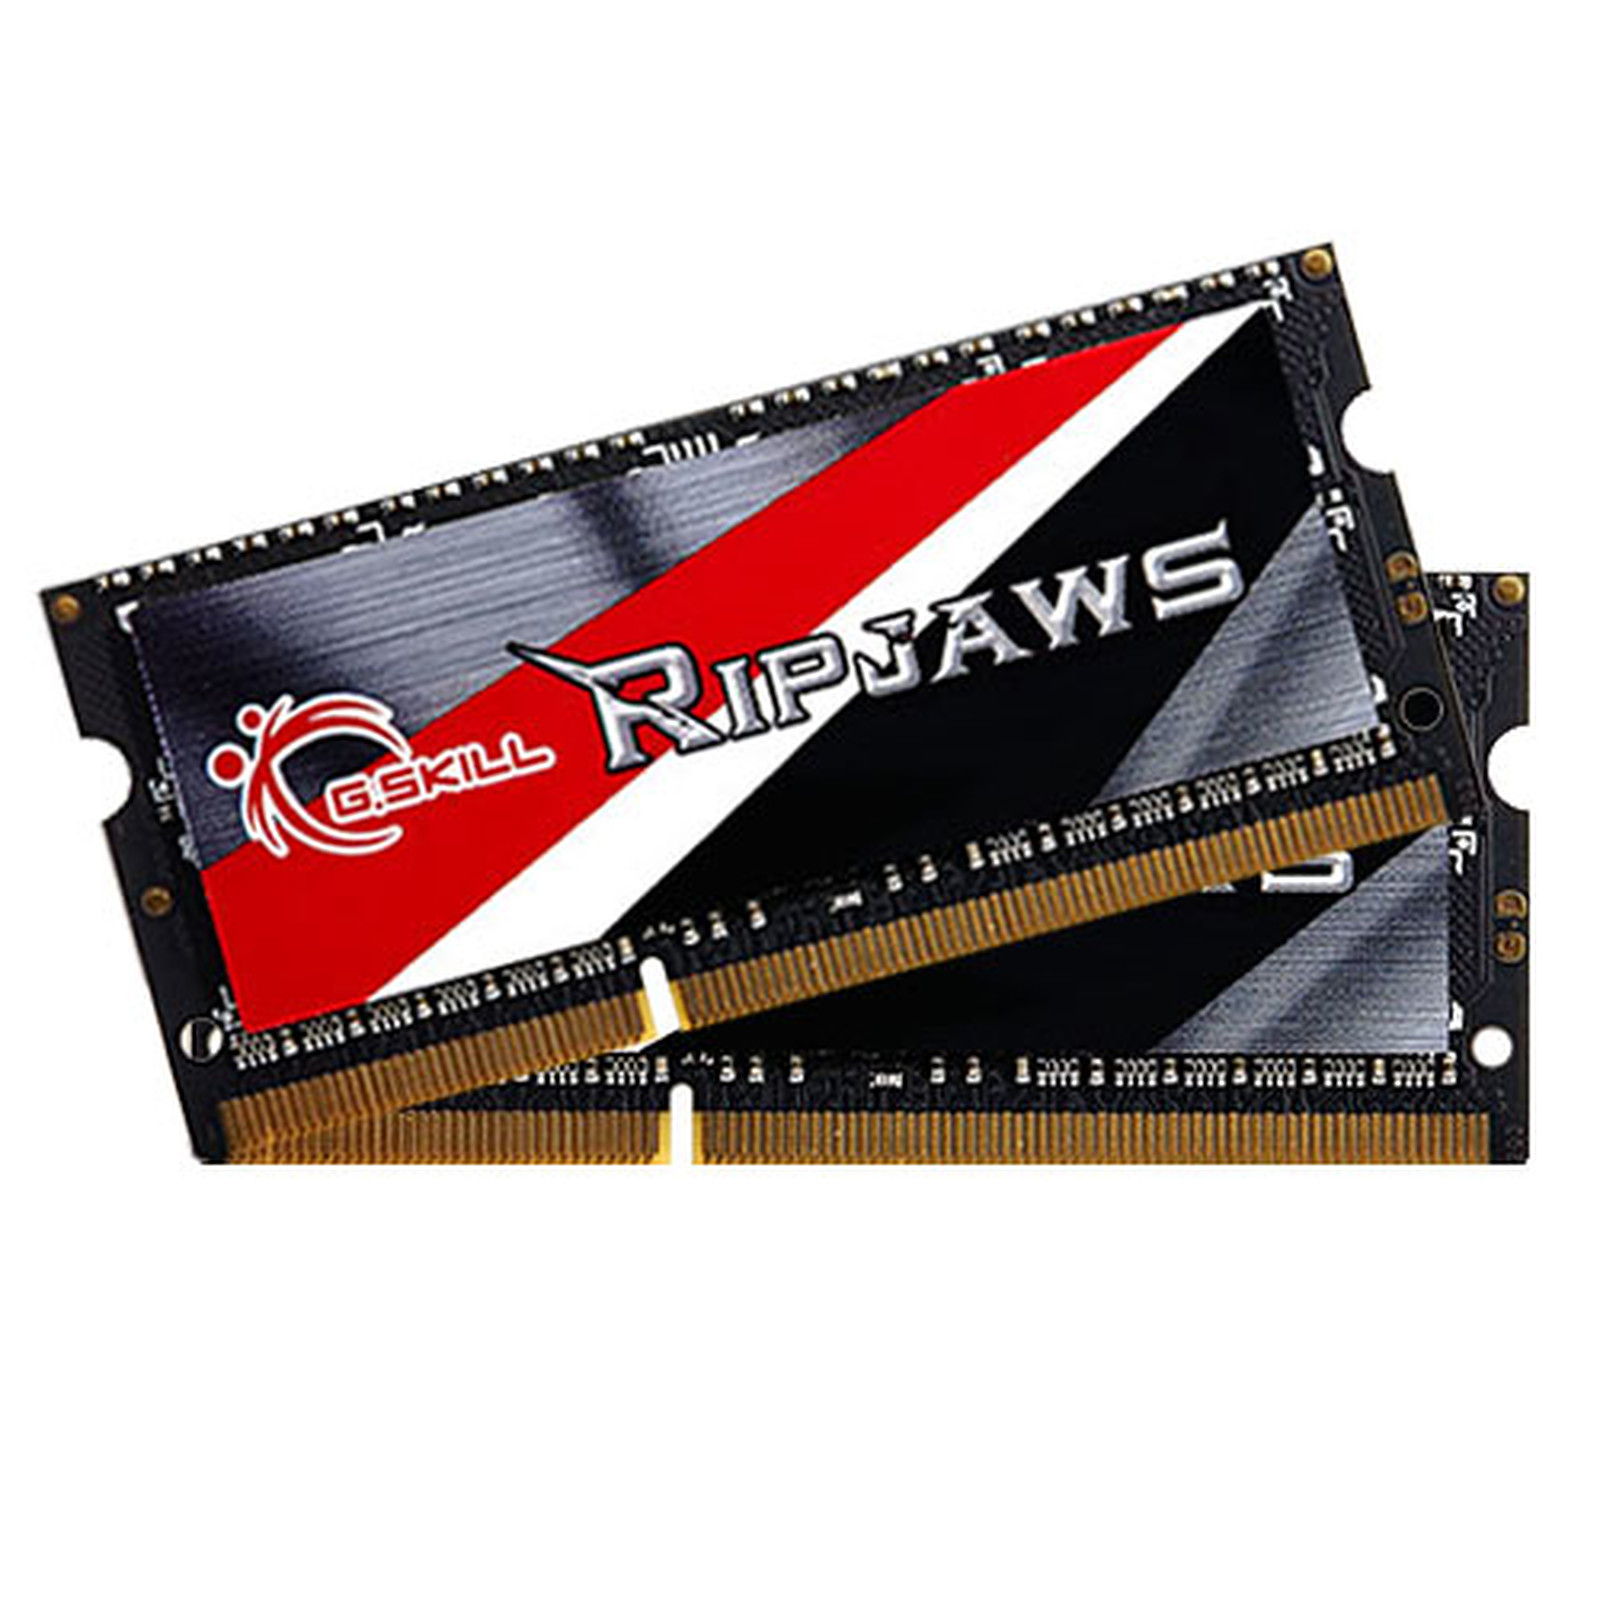 G.Skill RipJaws SO-DIMM 8 Go (2 x 4 Go) DDR3/DDR3L 1600 MHz CL9